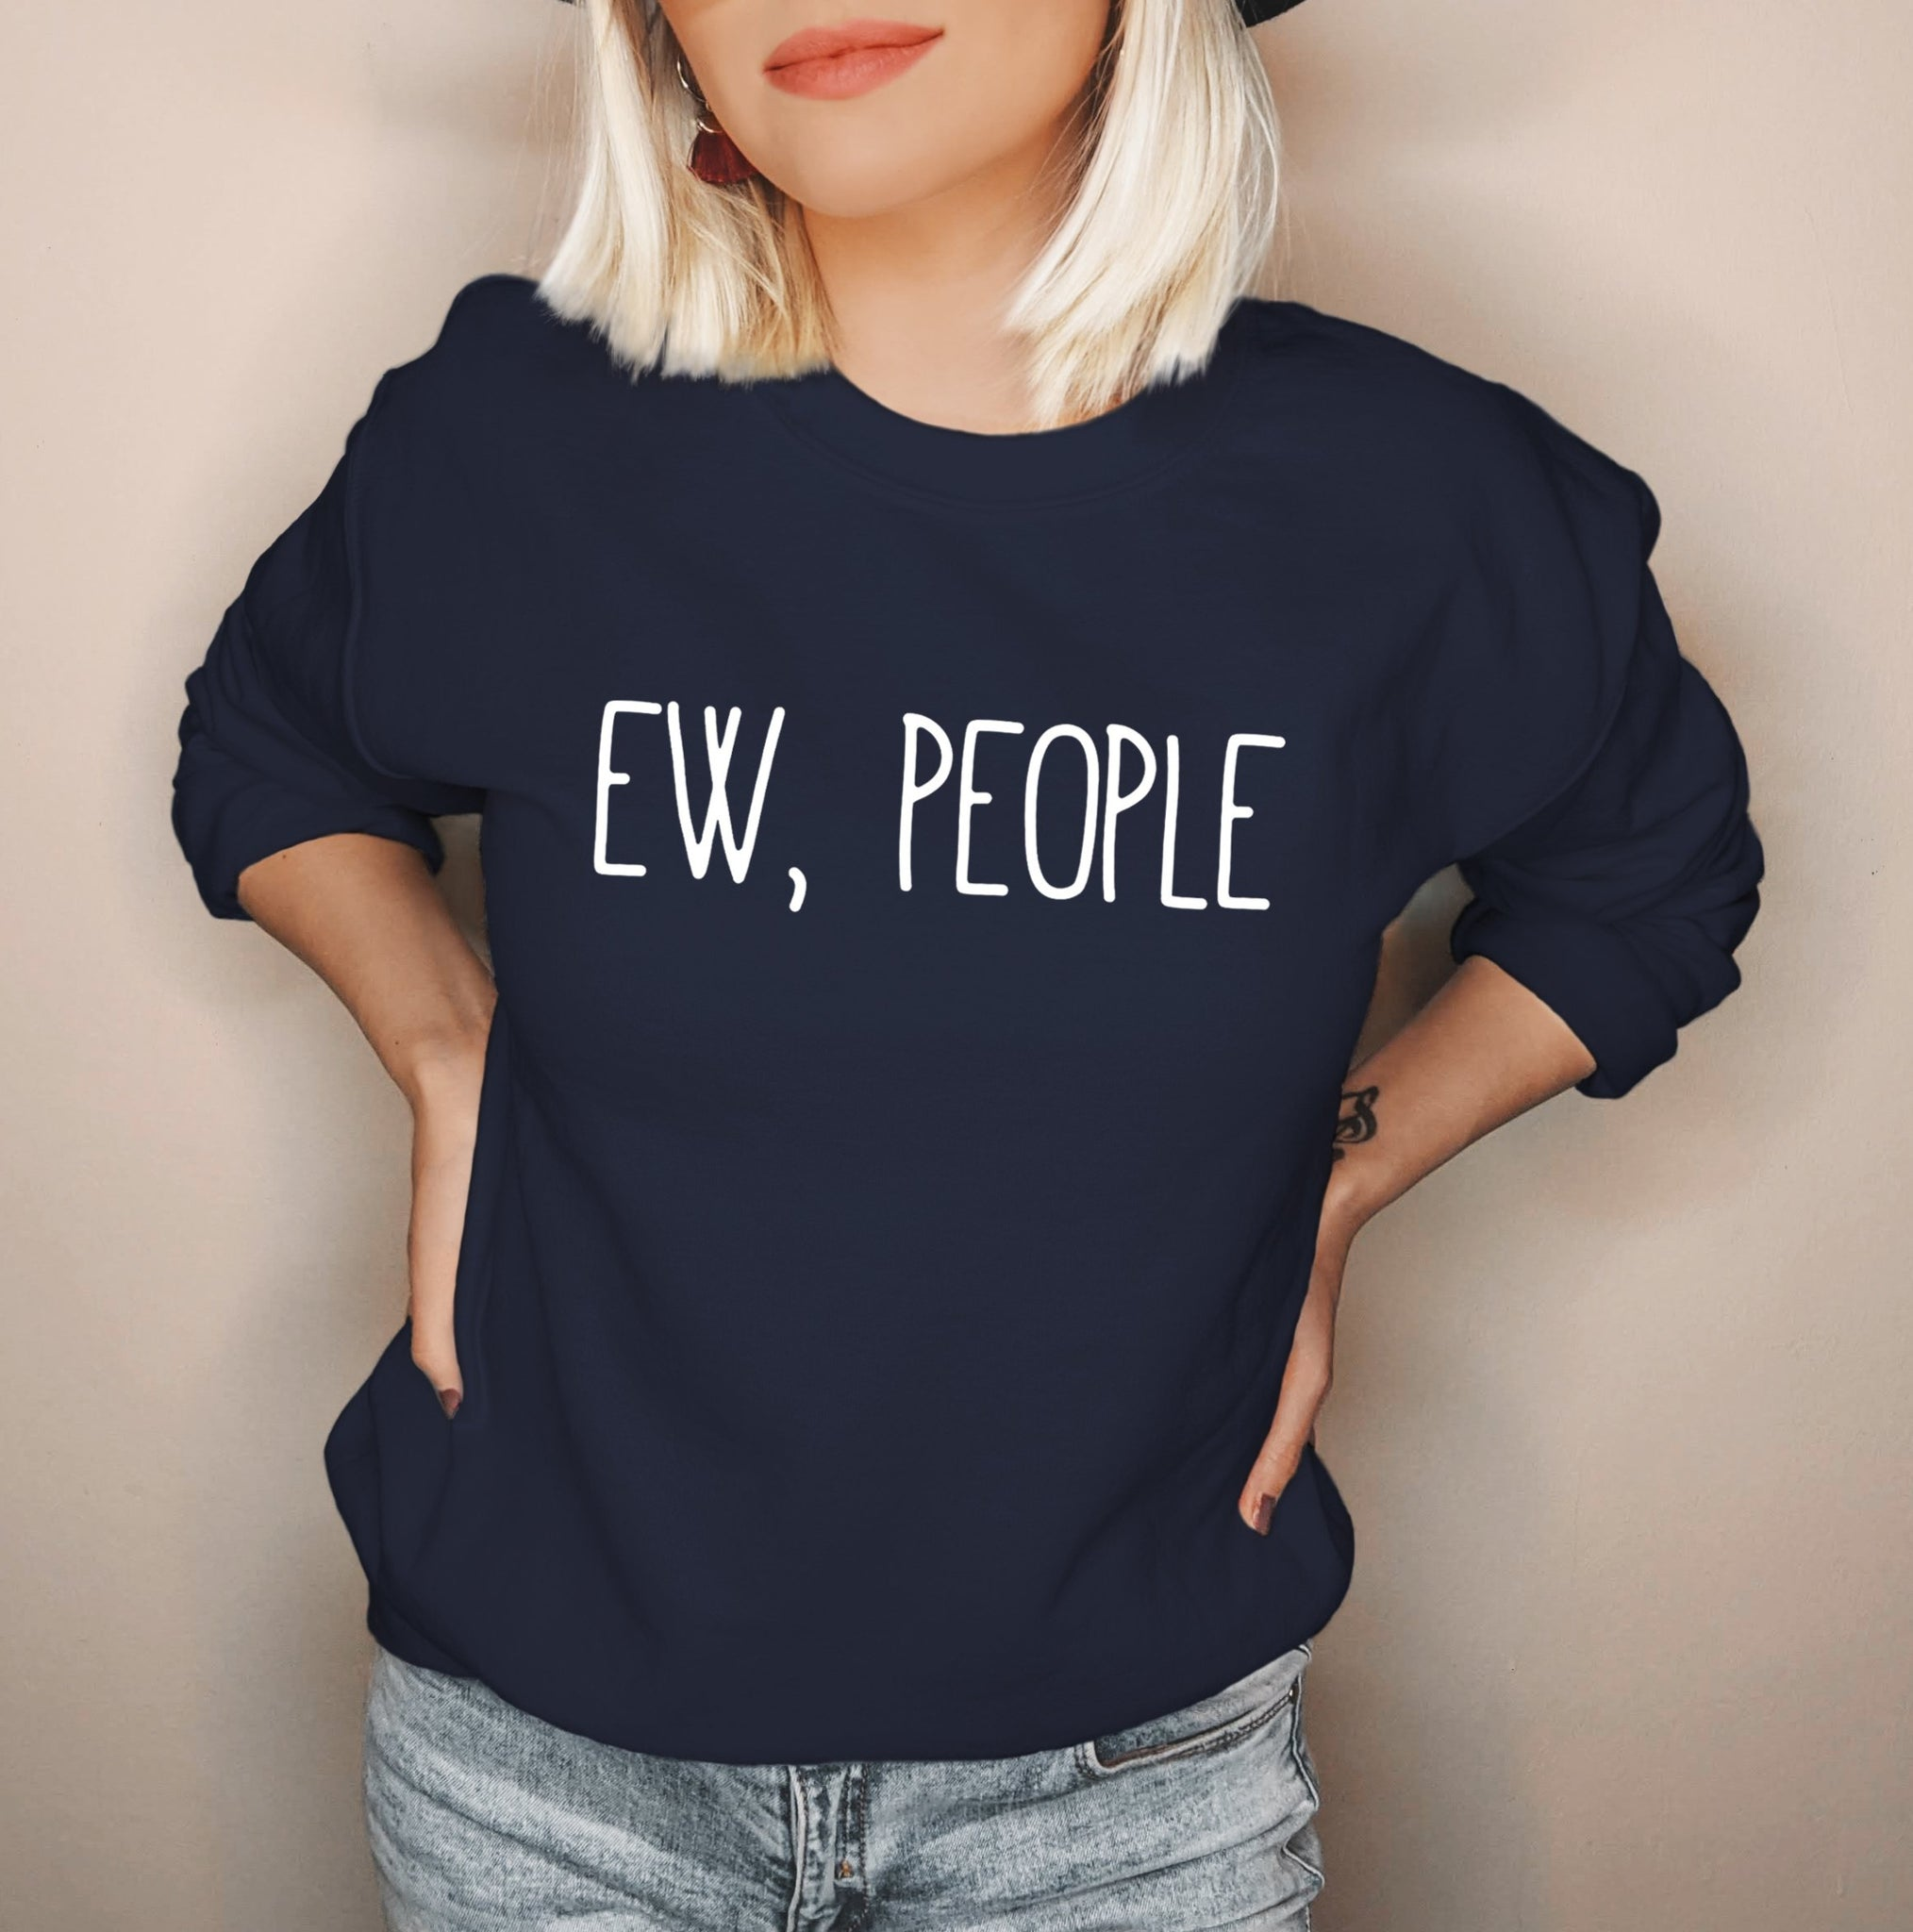 Navy sweatshirt saying ew people - HighCiti